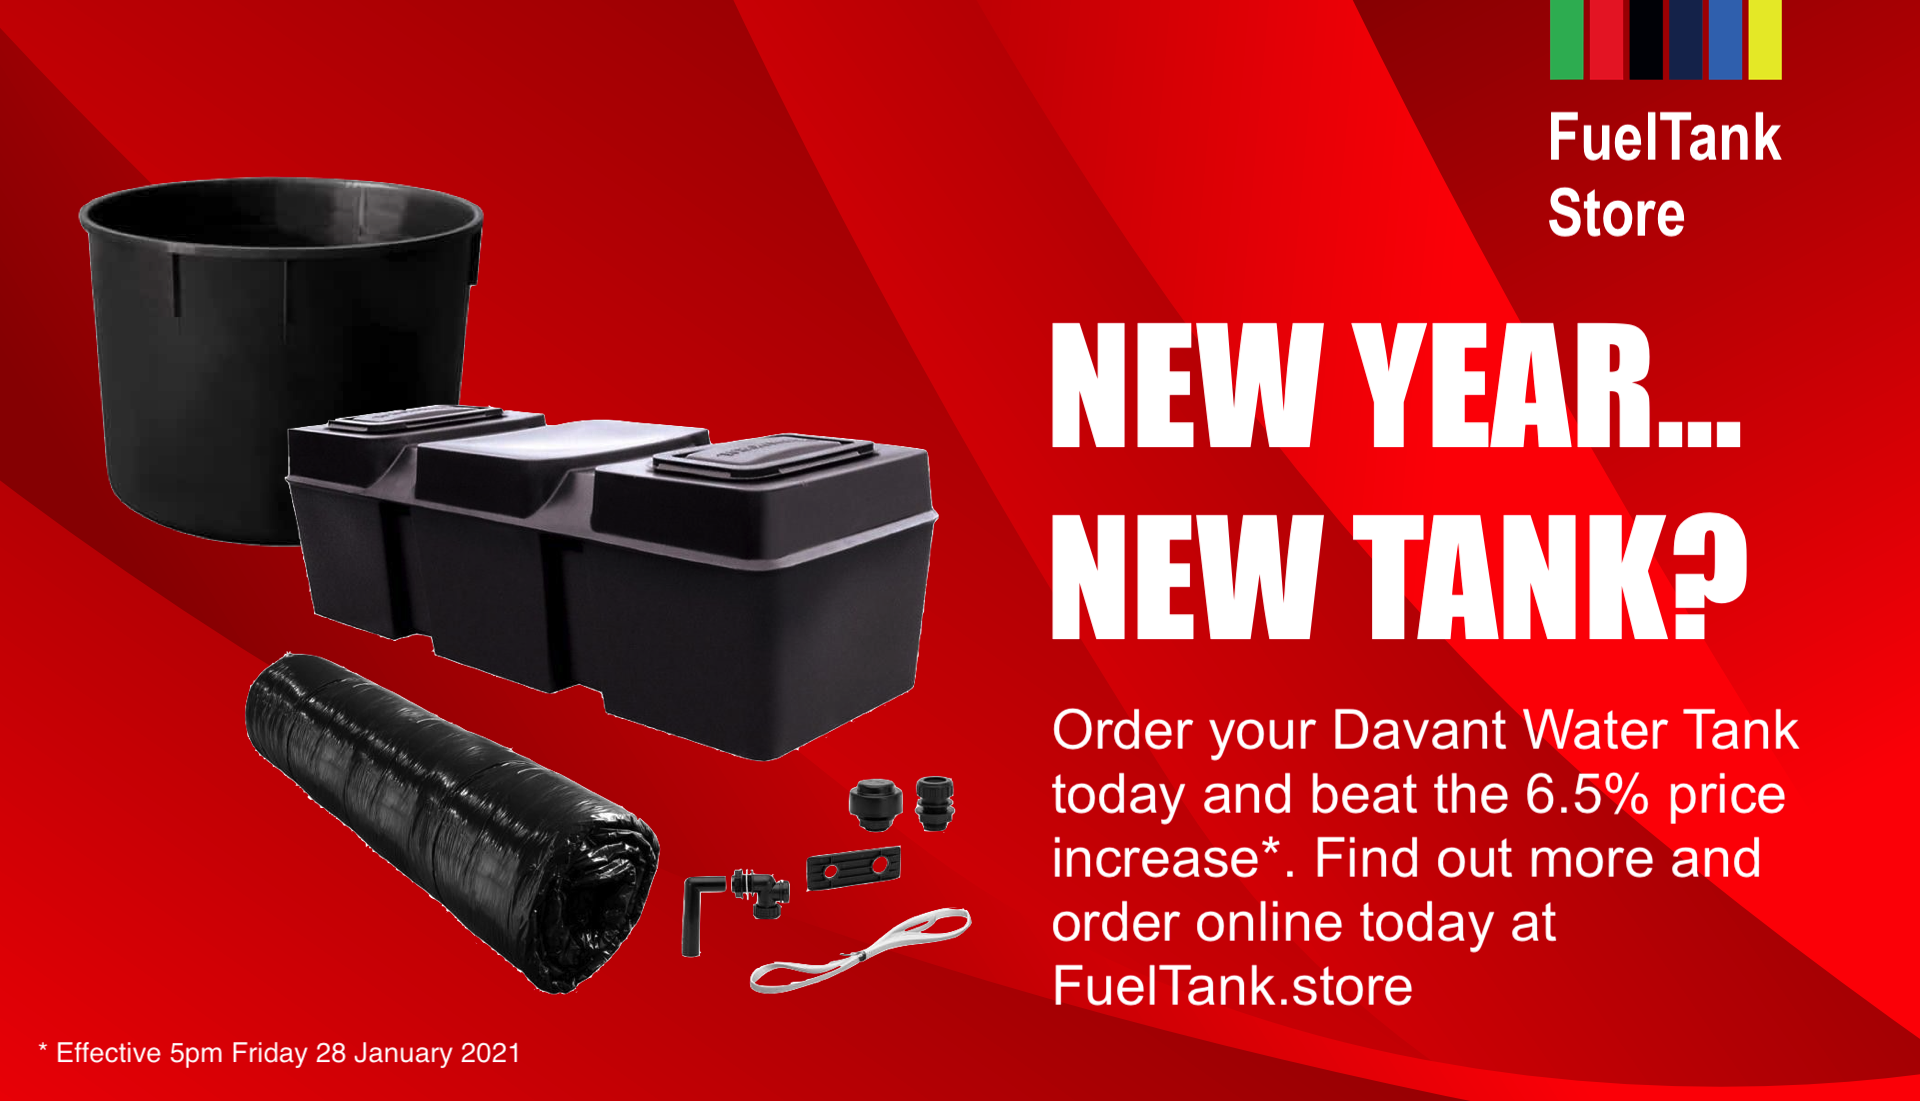 Davant Attic Tank on a red background with Fuel Tank Store logo. Accompanying text encourages customers to buy before 28 January 2021, due to upcoming price increase.